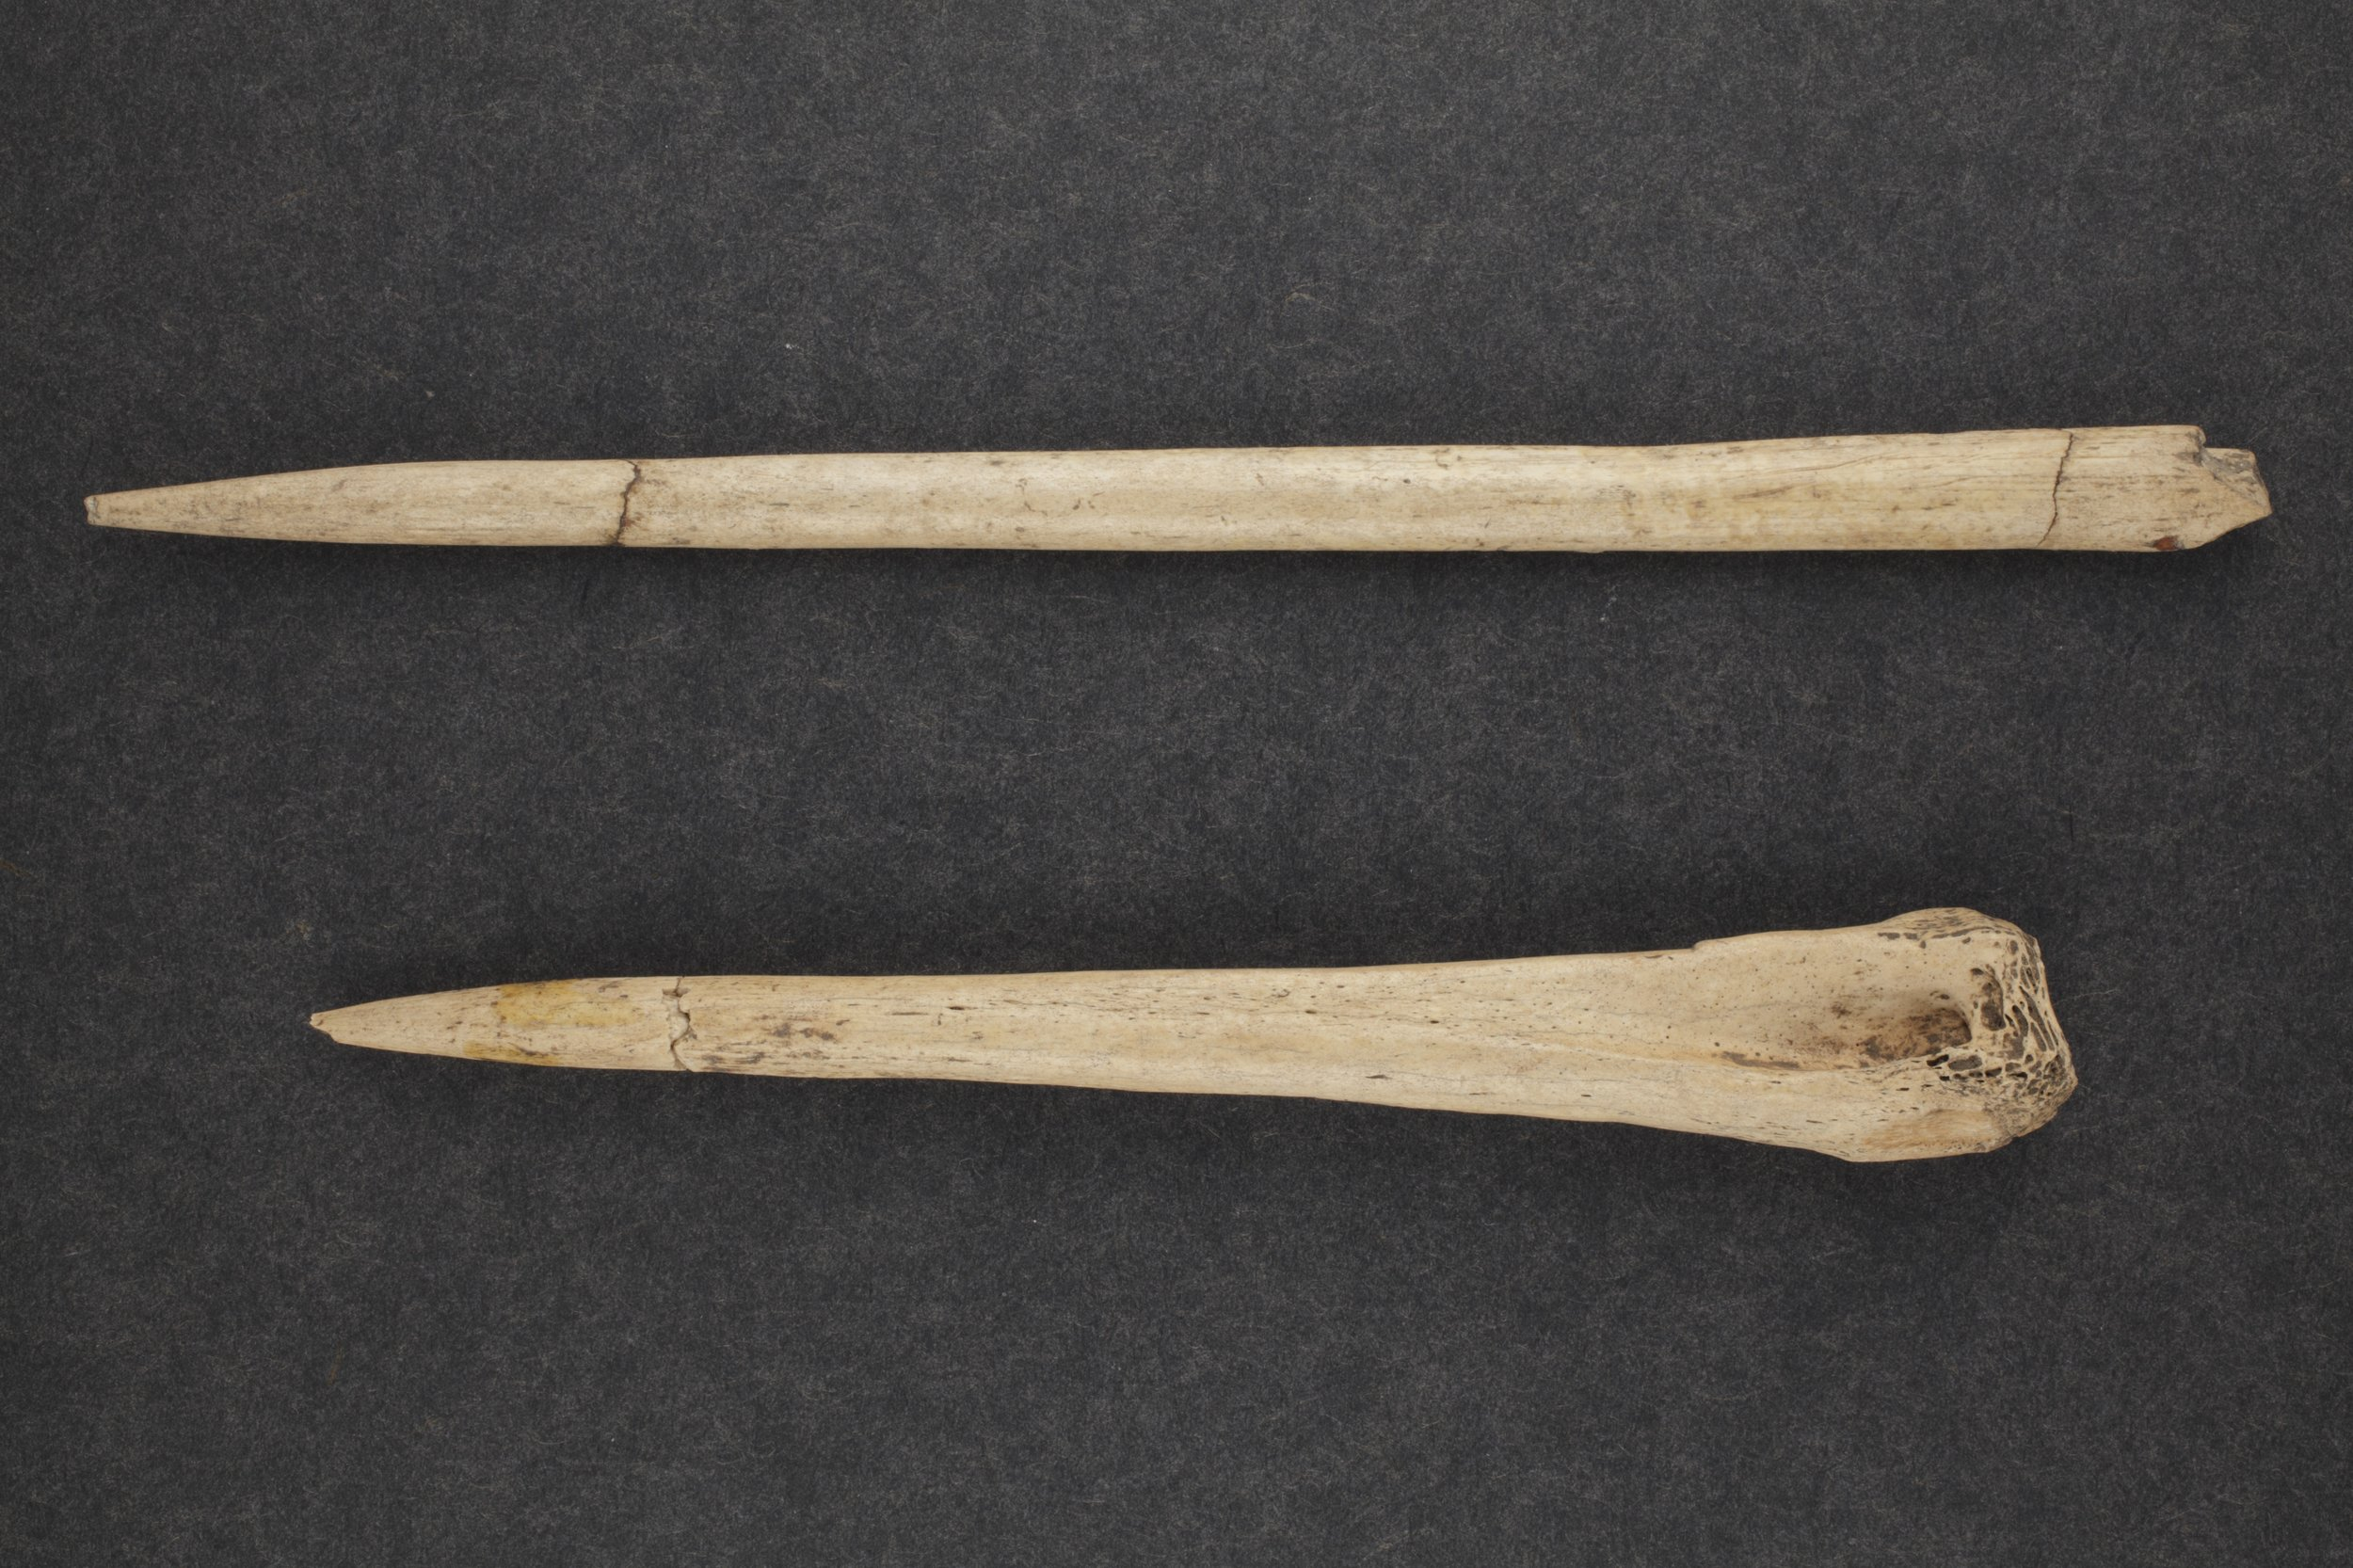 Bone Awls from the Curry Site, 14GR301 - 2